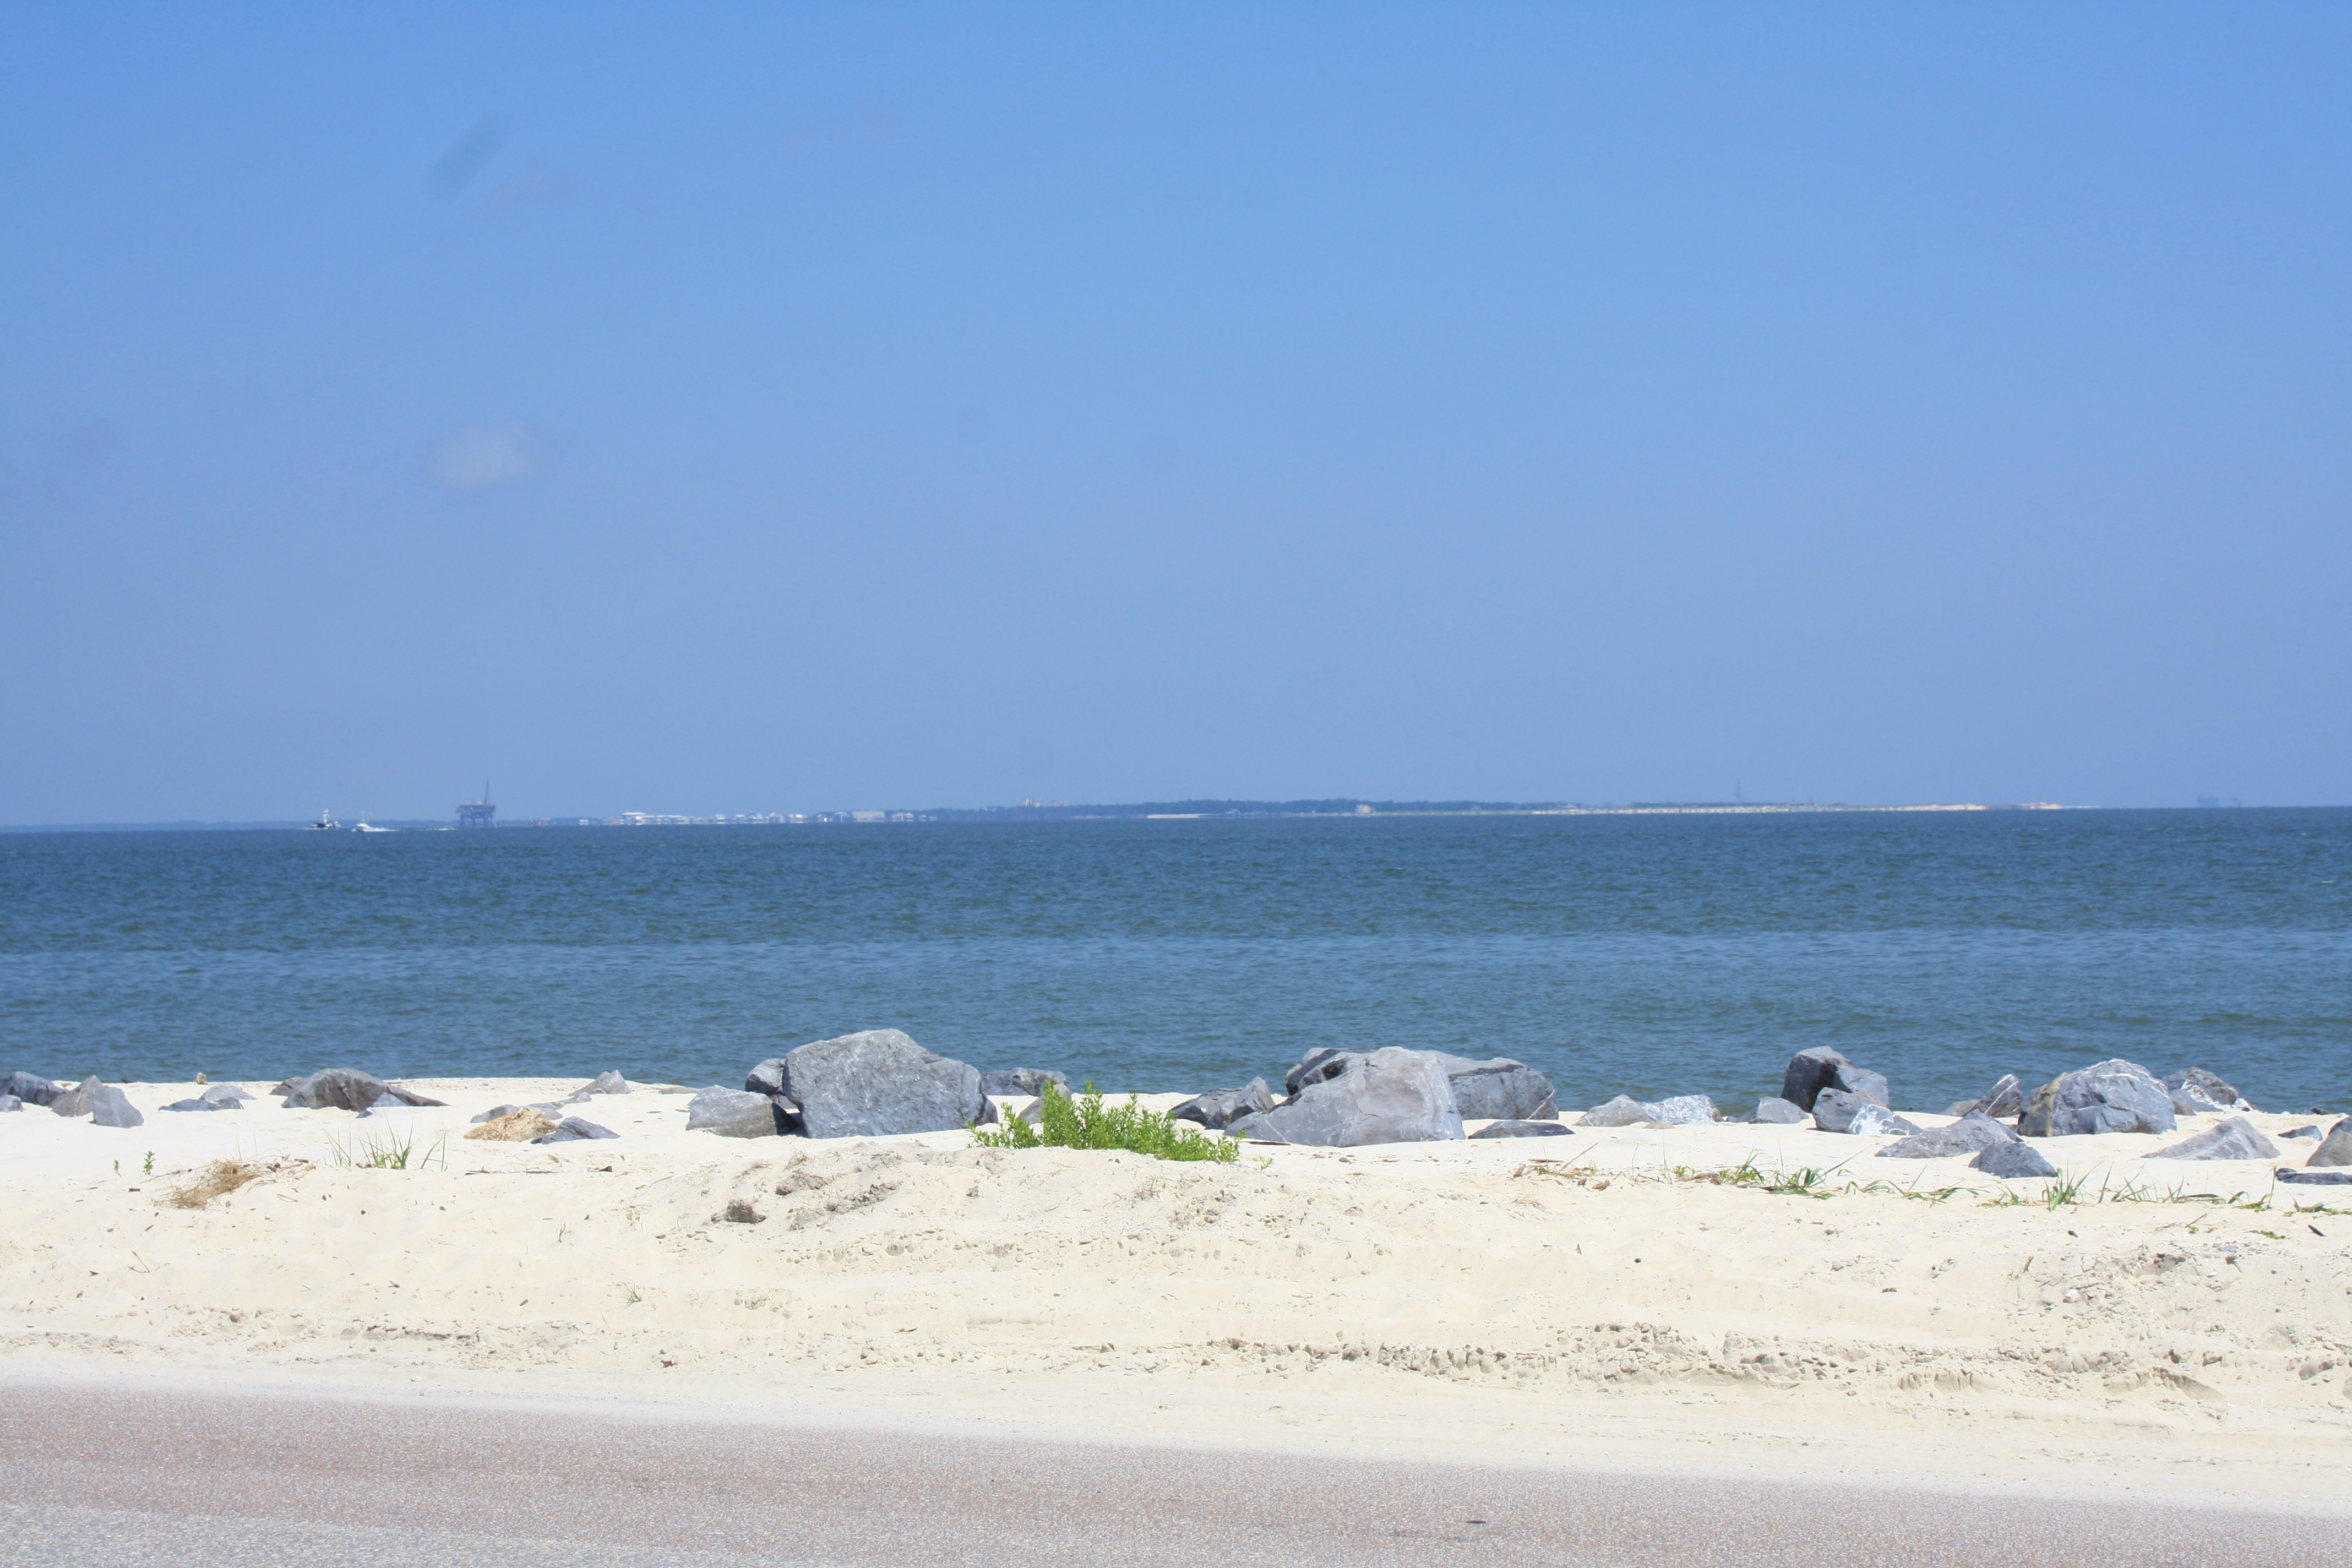 dauphin island online dating Dauphin island real estate, inc vacation rentals  dauphin island marina is a  history dating to the 15th century dauphin island campground offers.